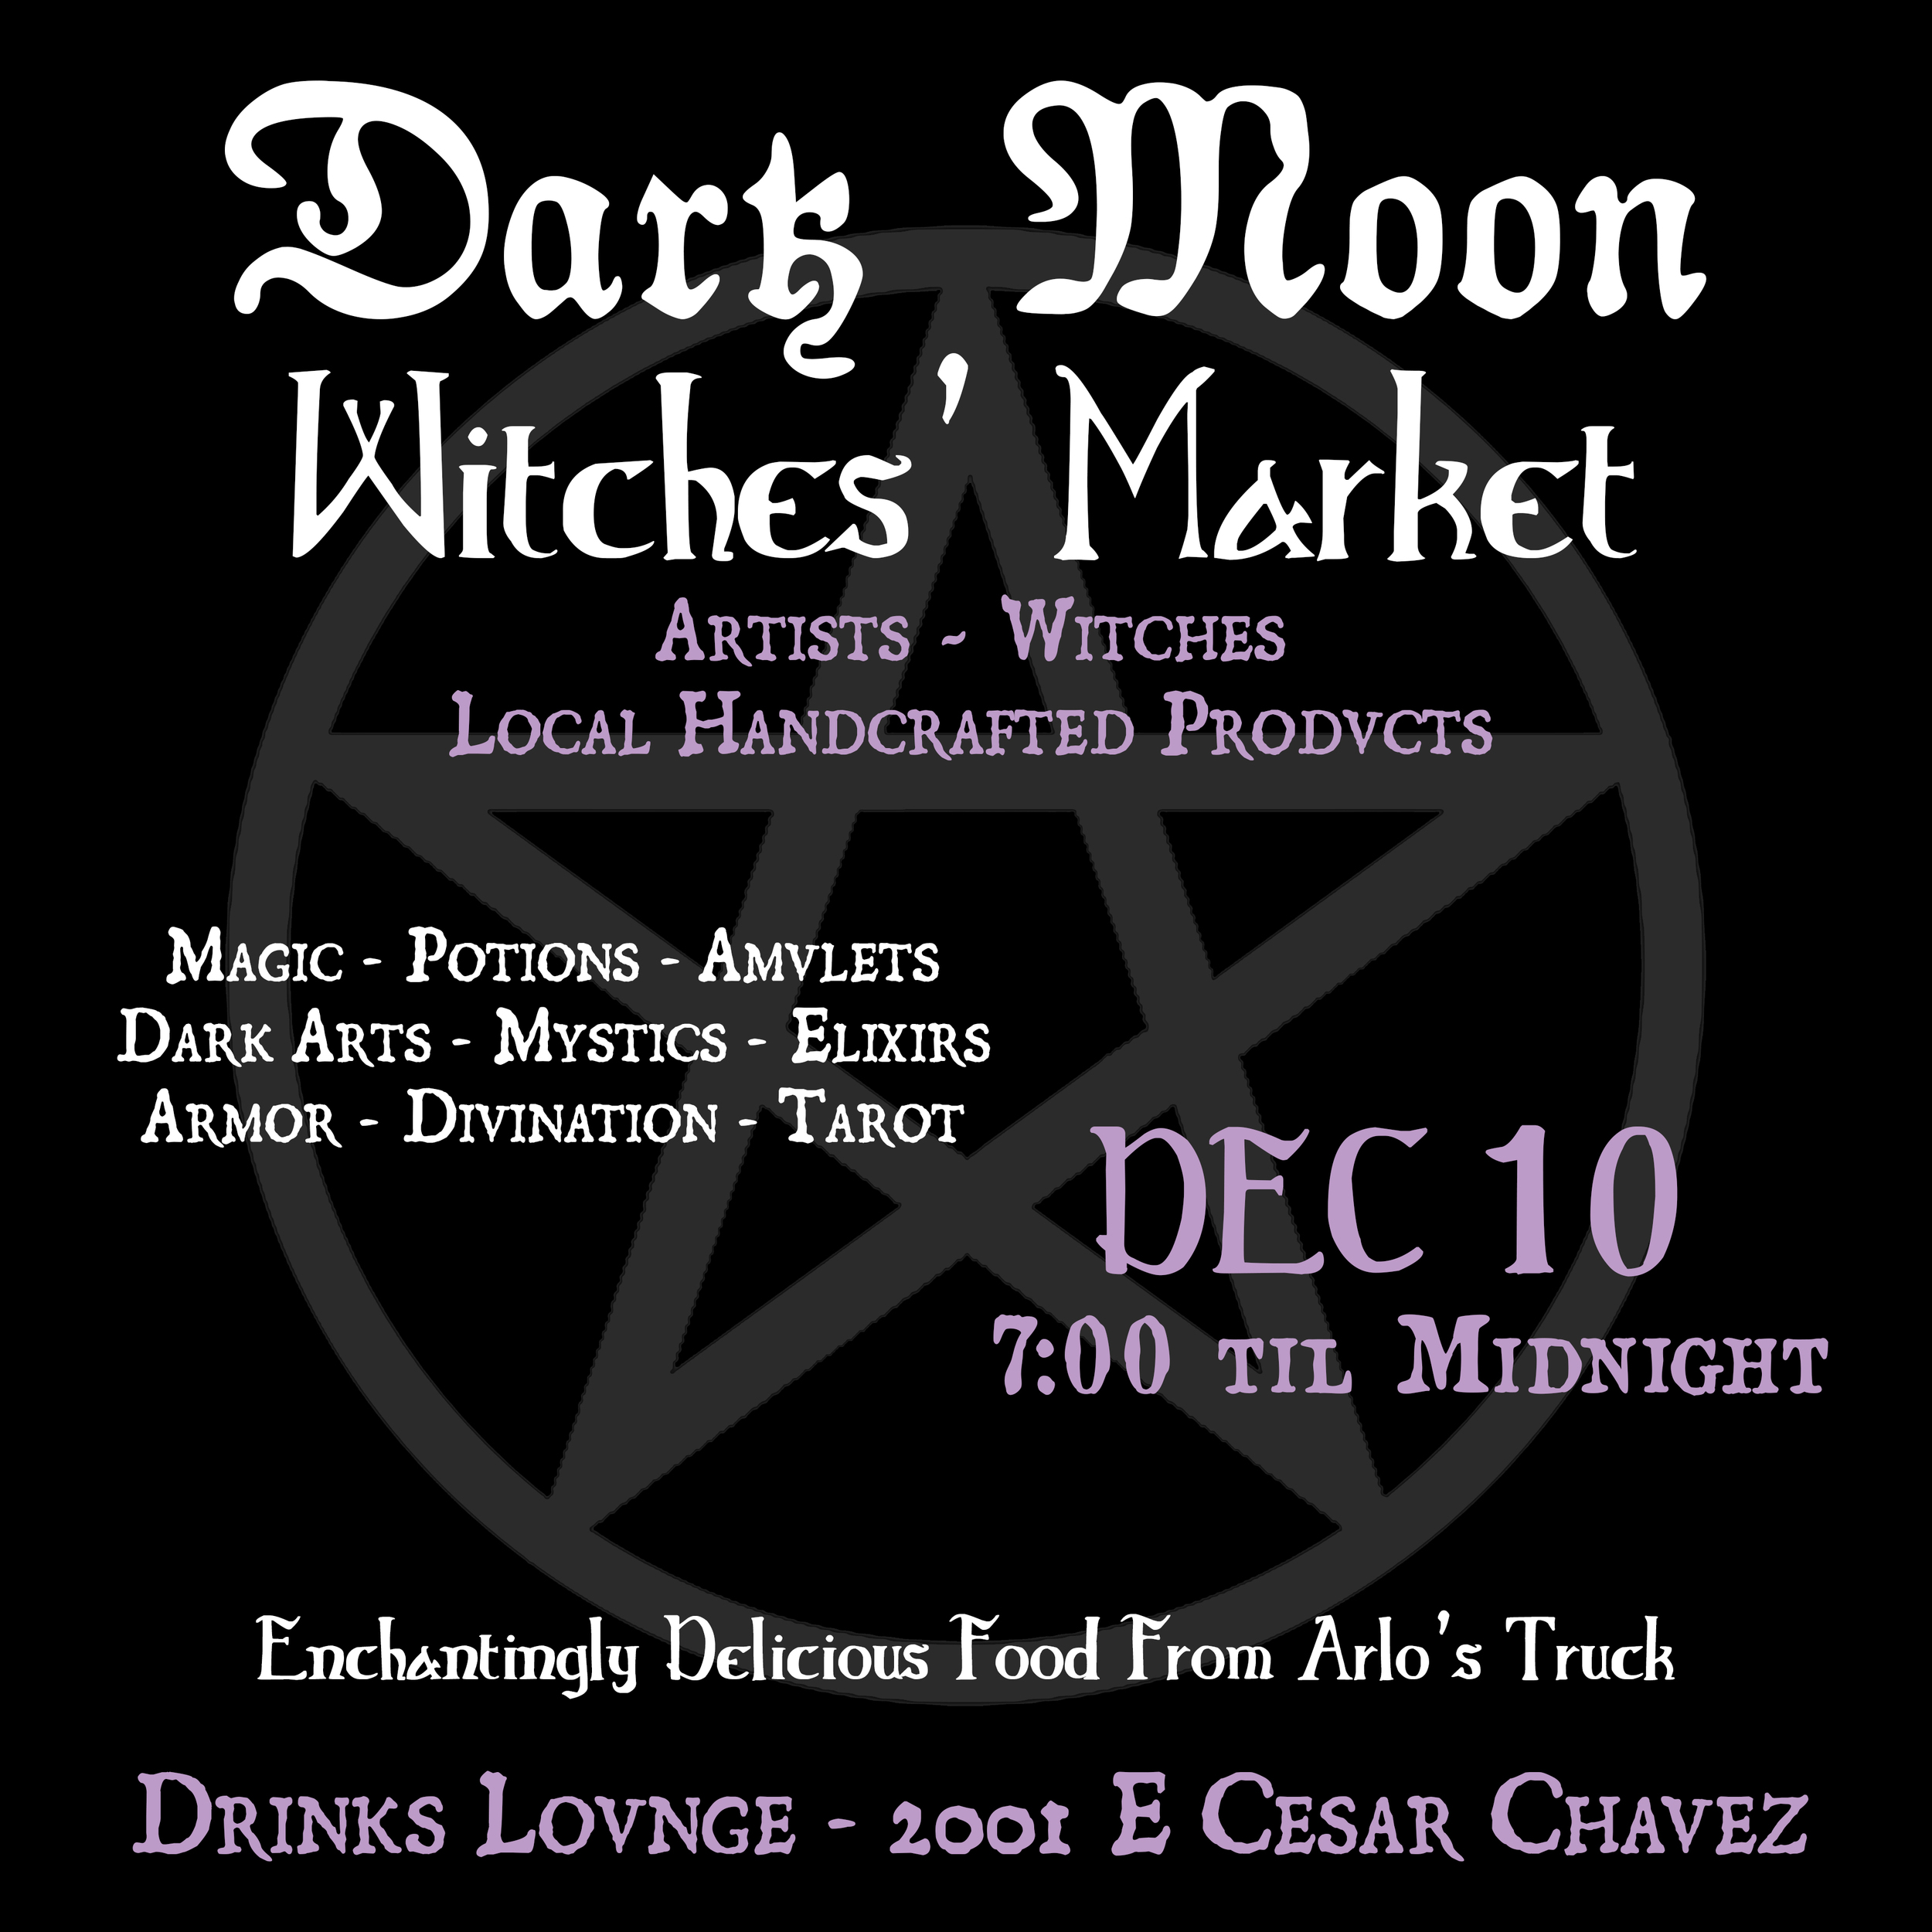 Witches Instagram Flyer